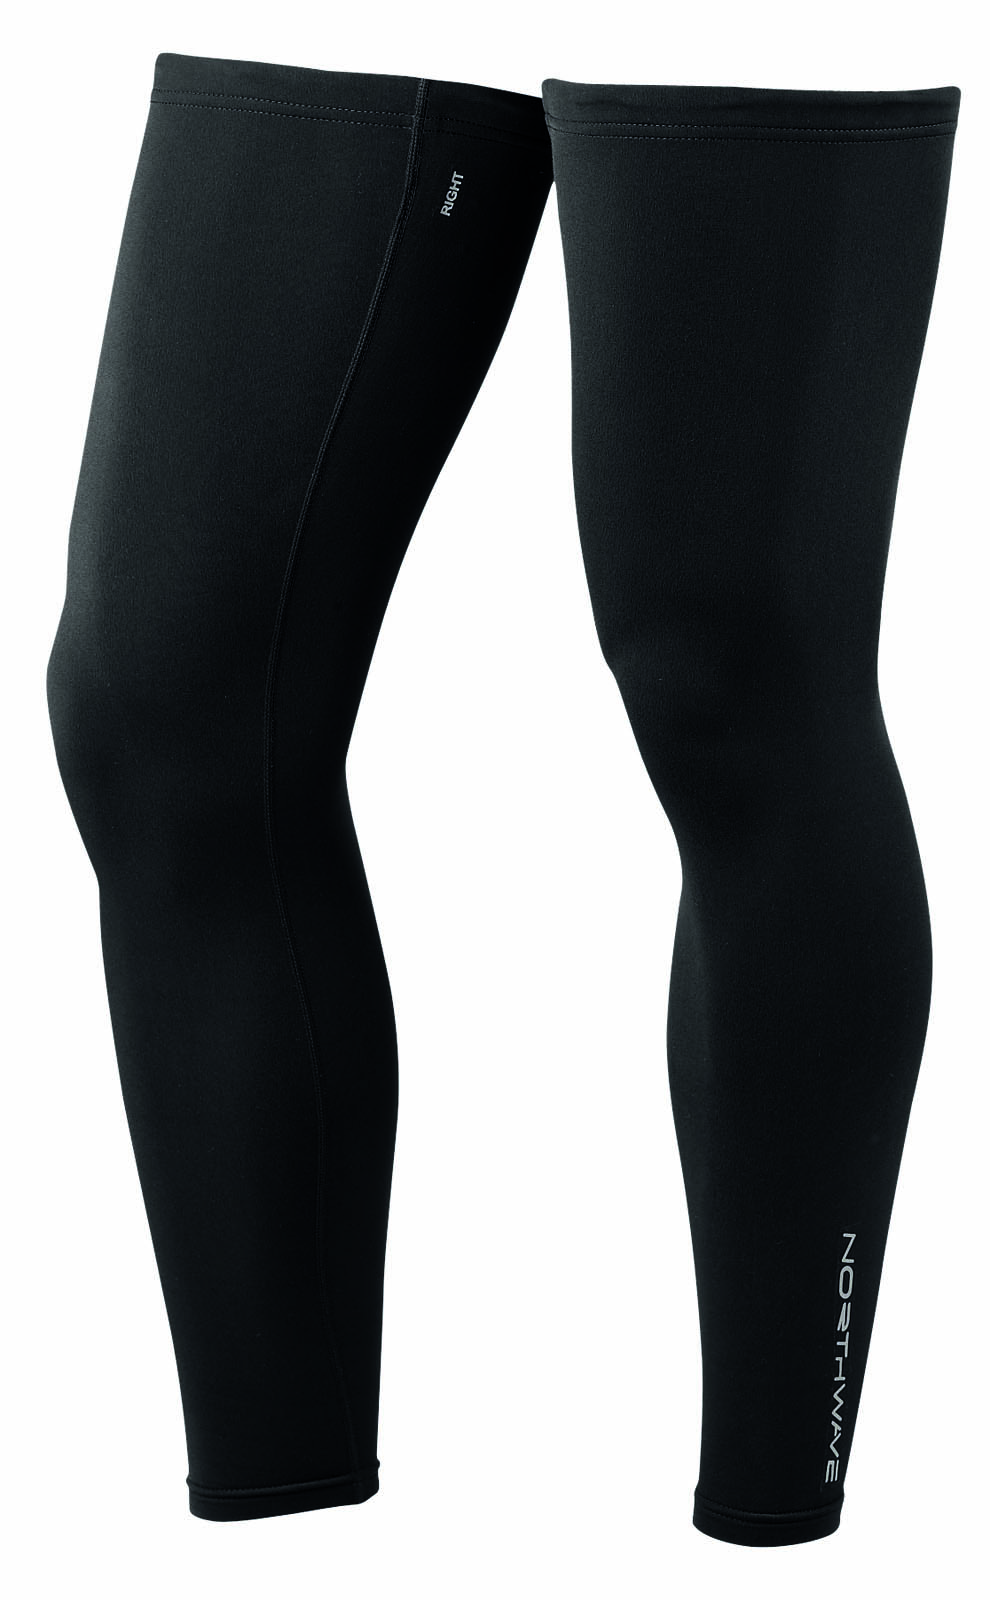 Northwave Access Easy Leg Warmers | Warmers